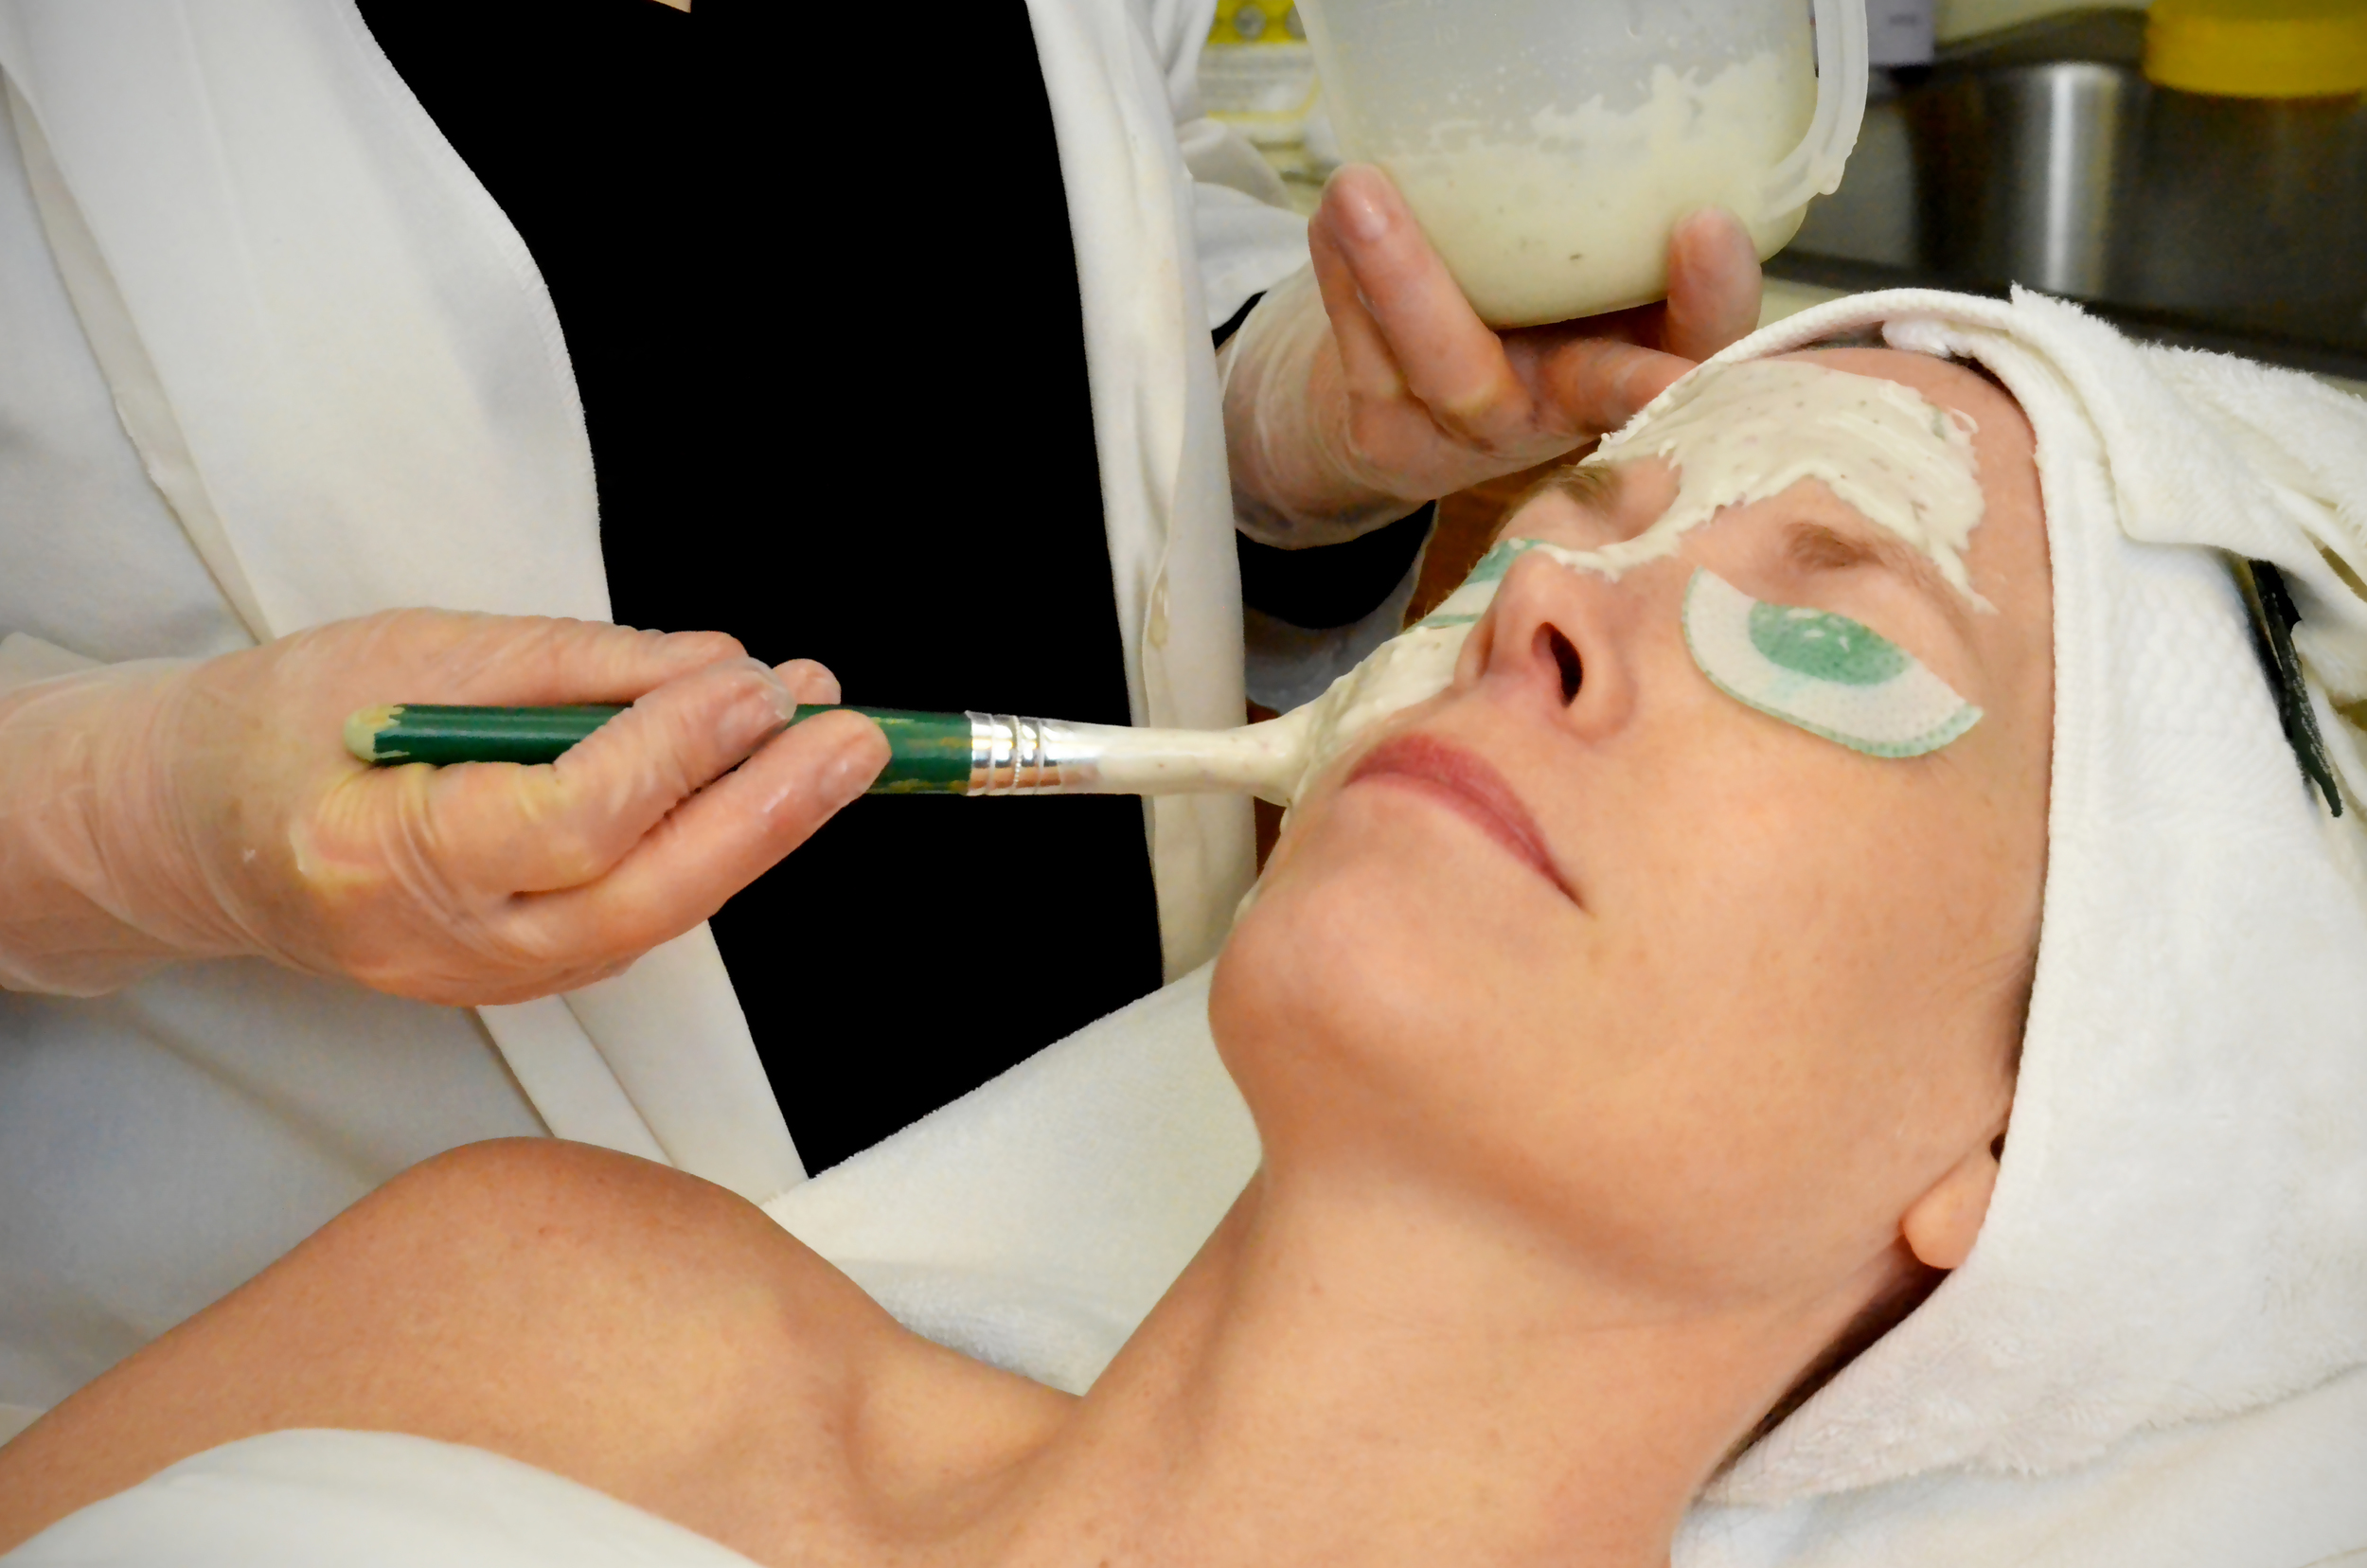 Teresa applies a mask for a client during a relaxing facial